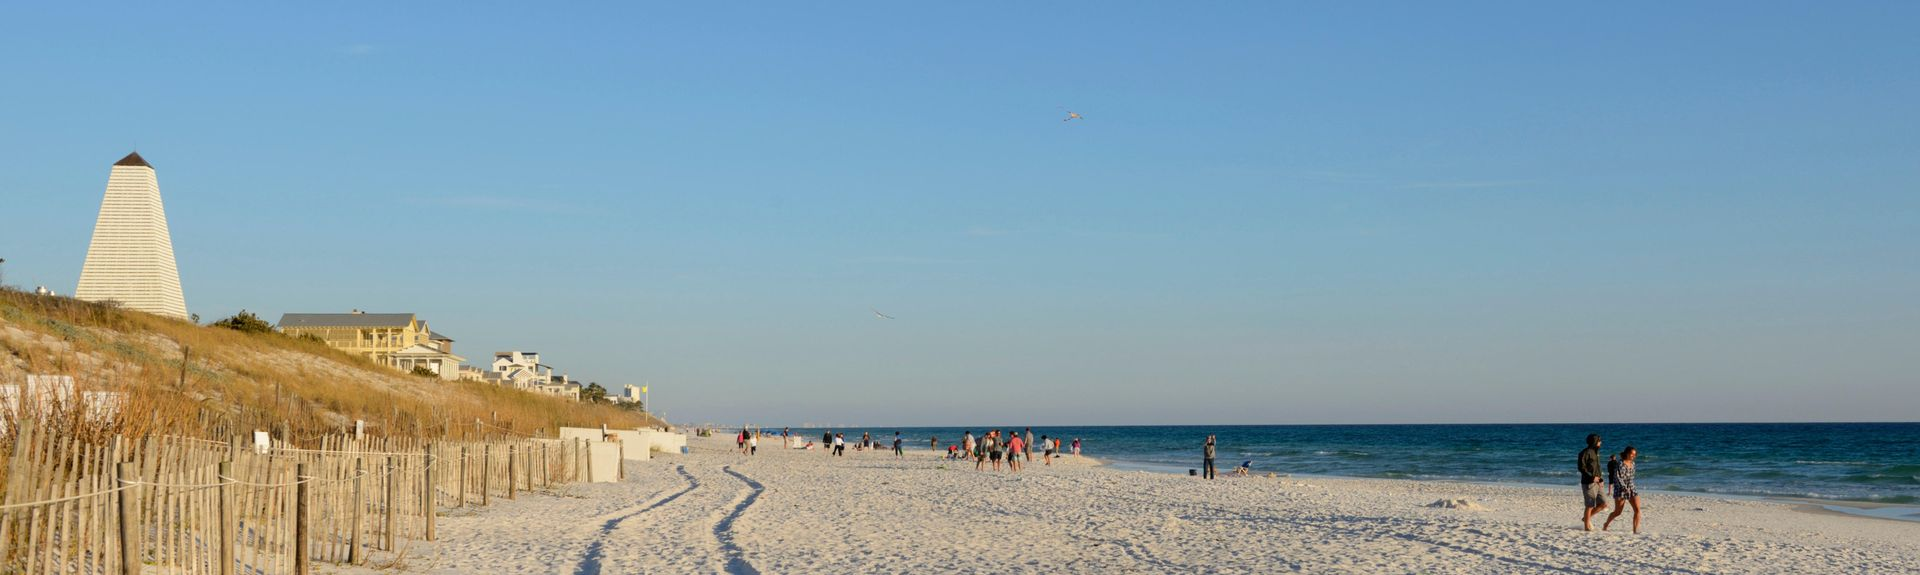 Seaside, Santa Rosa Beach, Florida, United States of America